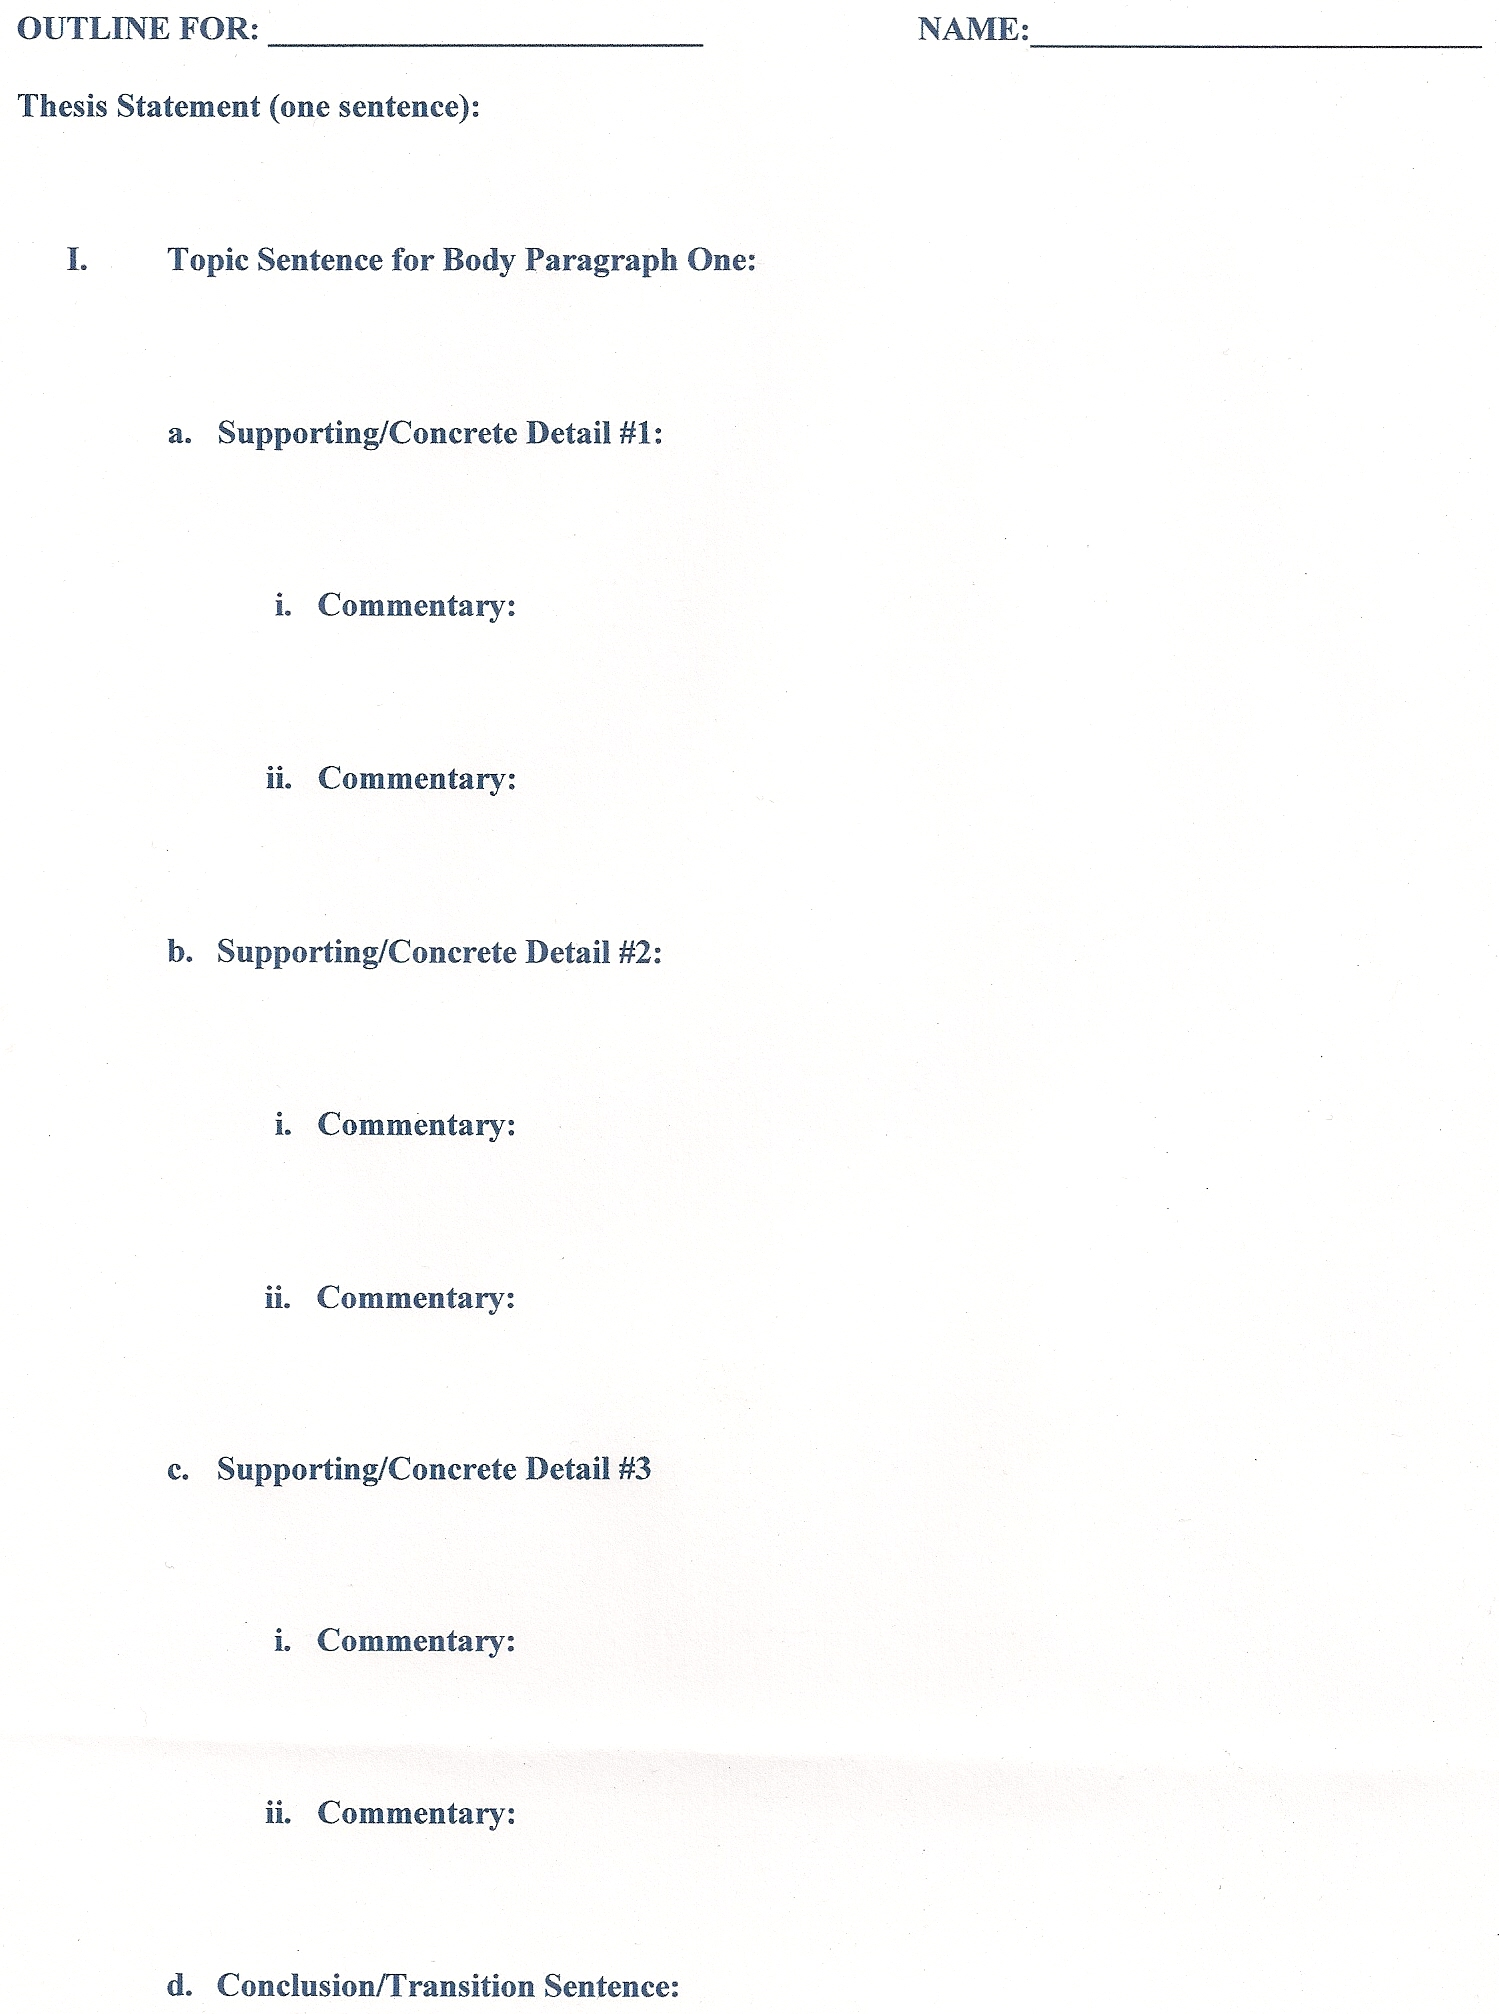 017 Sample Outlines For Researchs Outline Awful Research Papers Writing Full